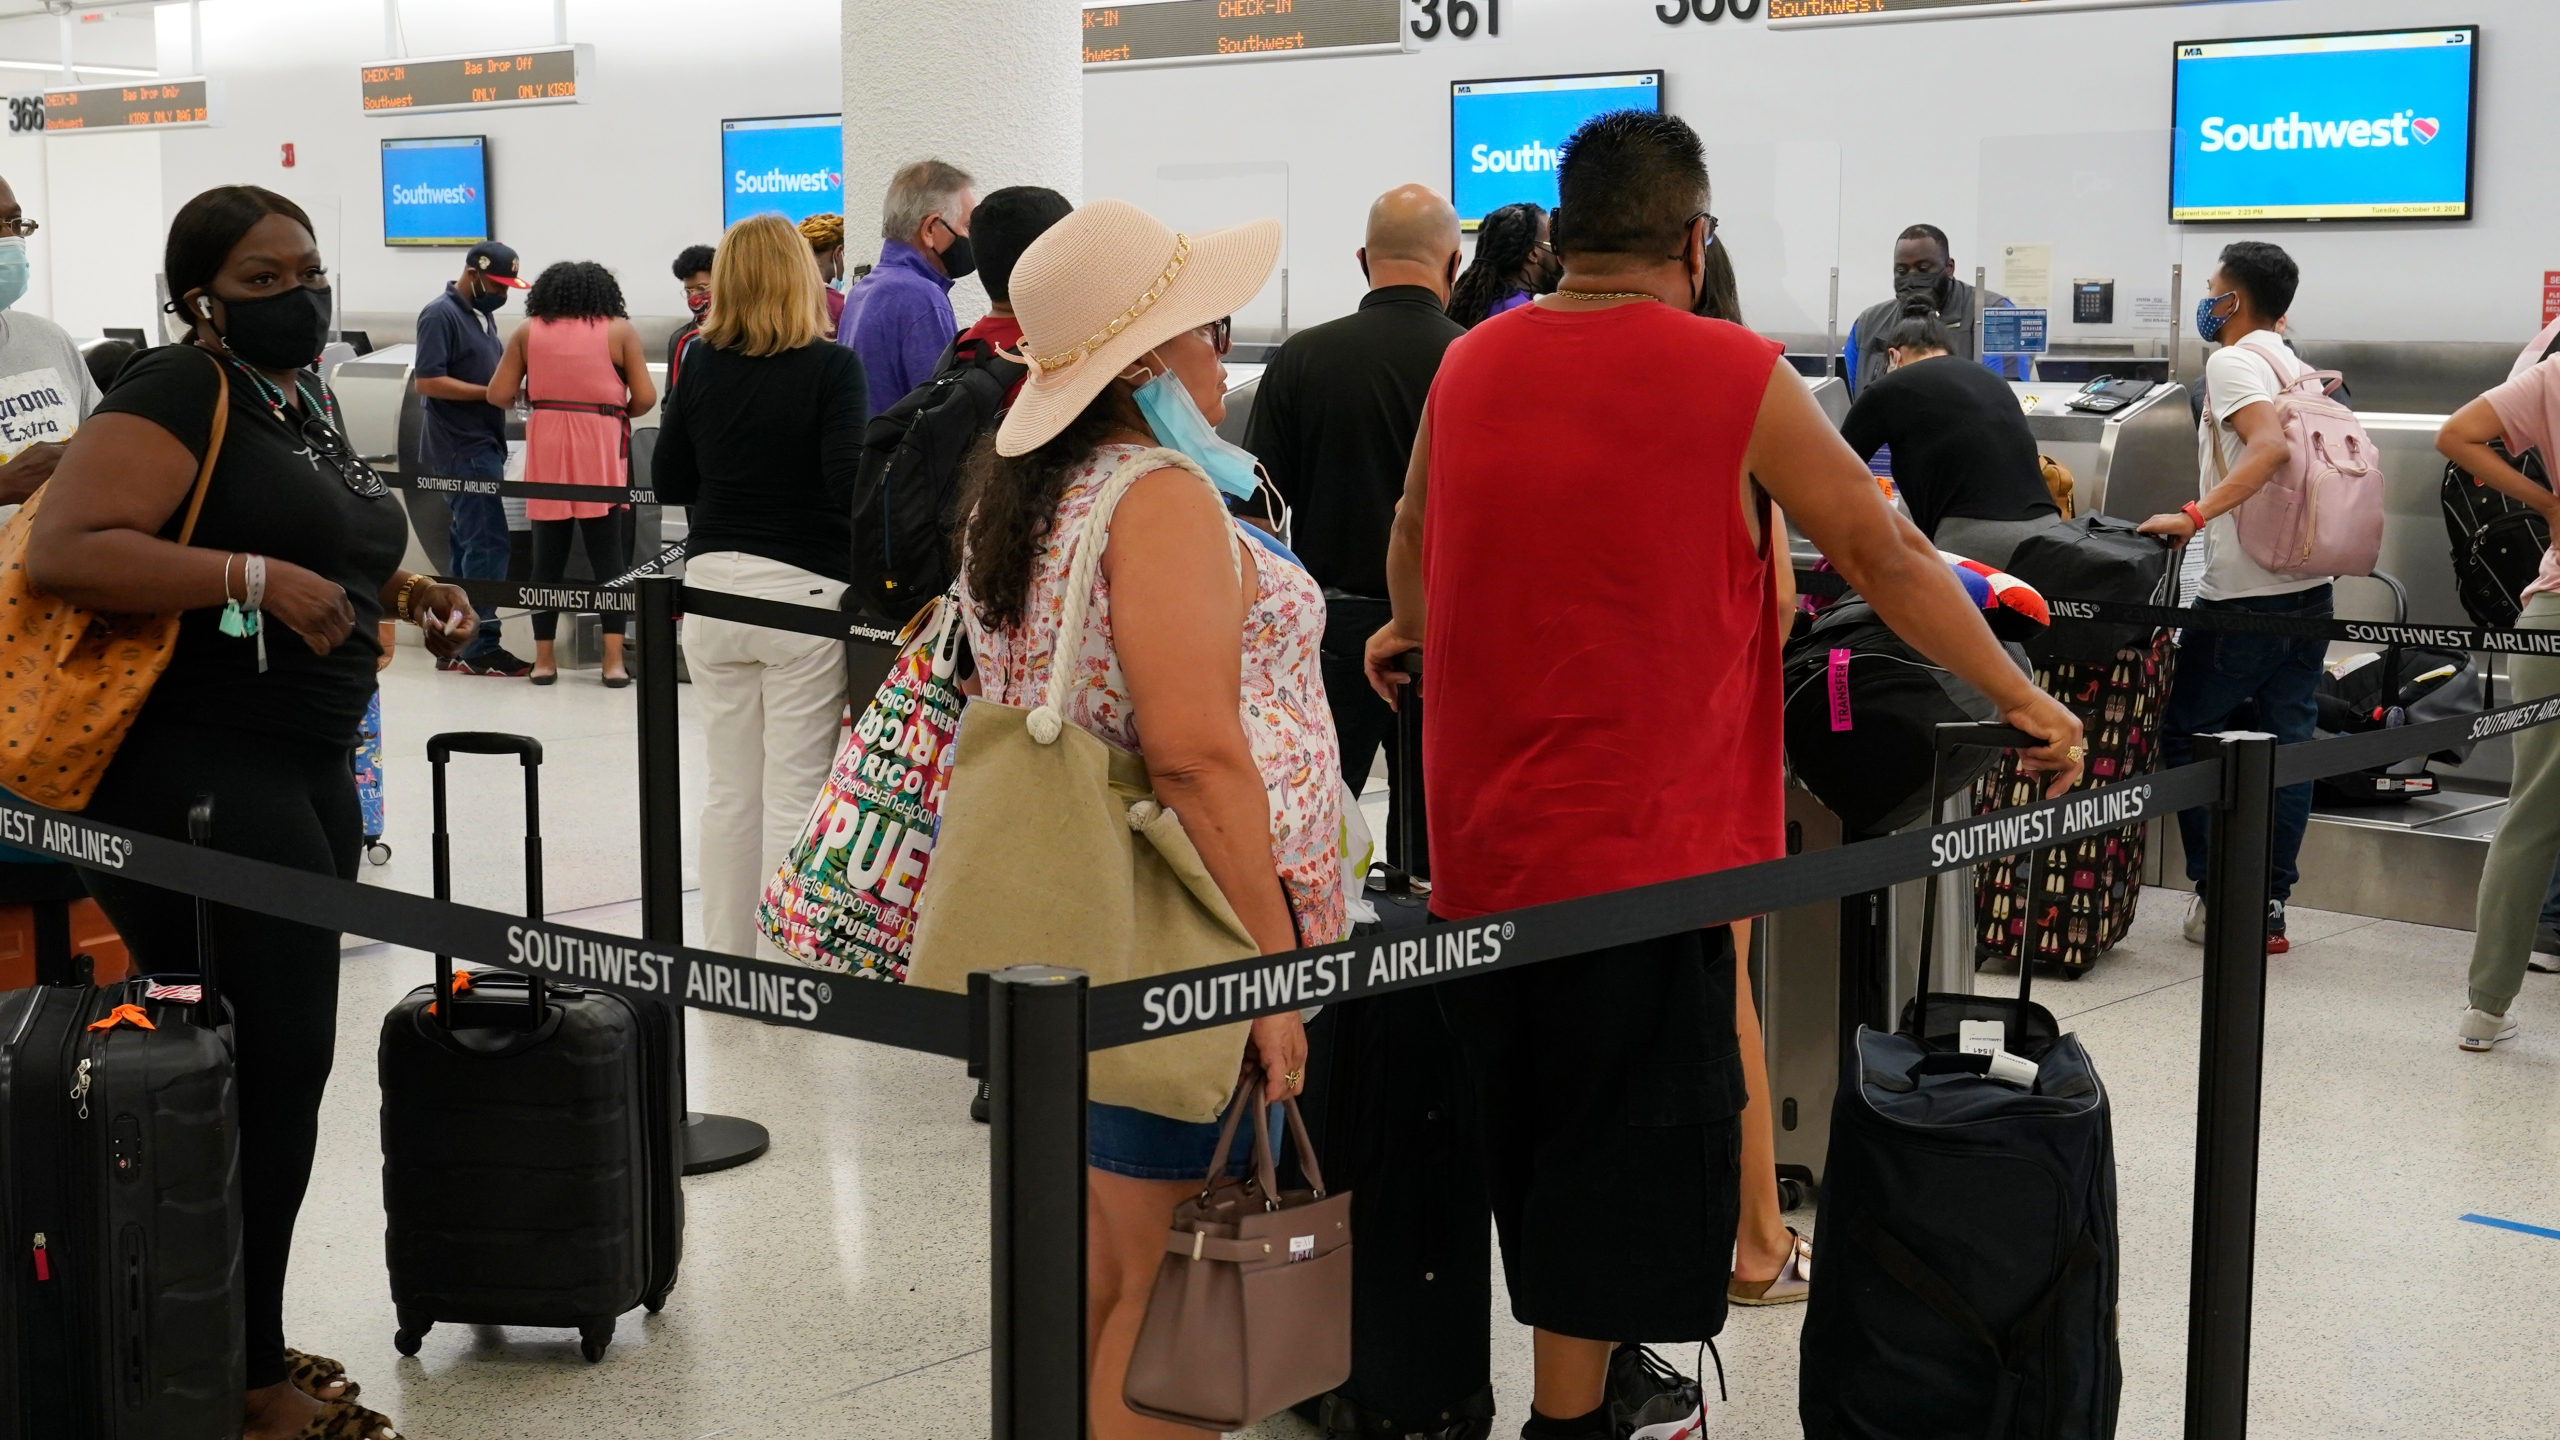 image of travelers in line at airport